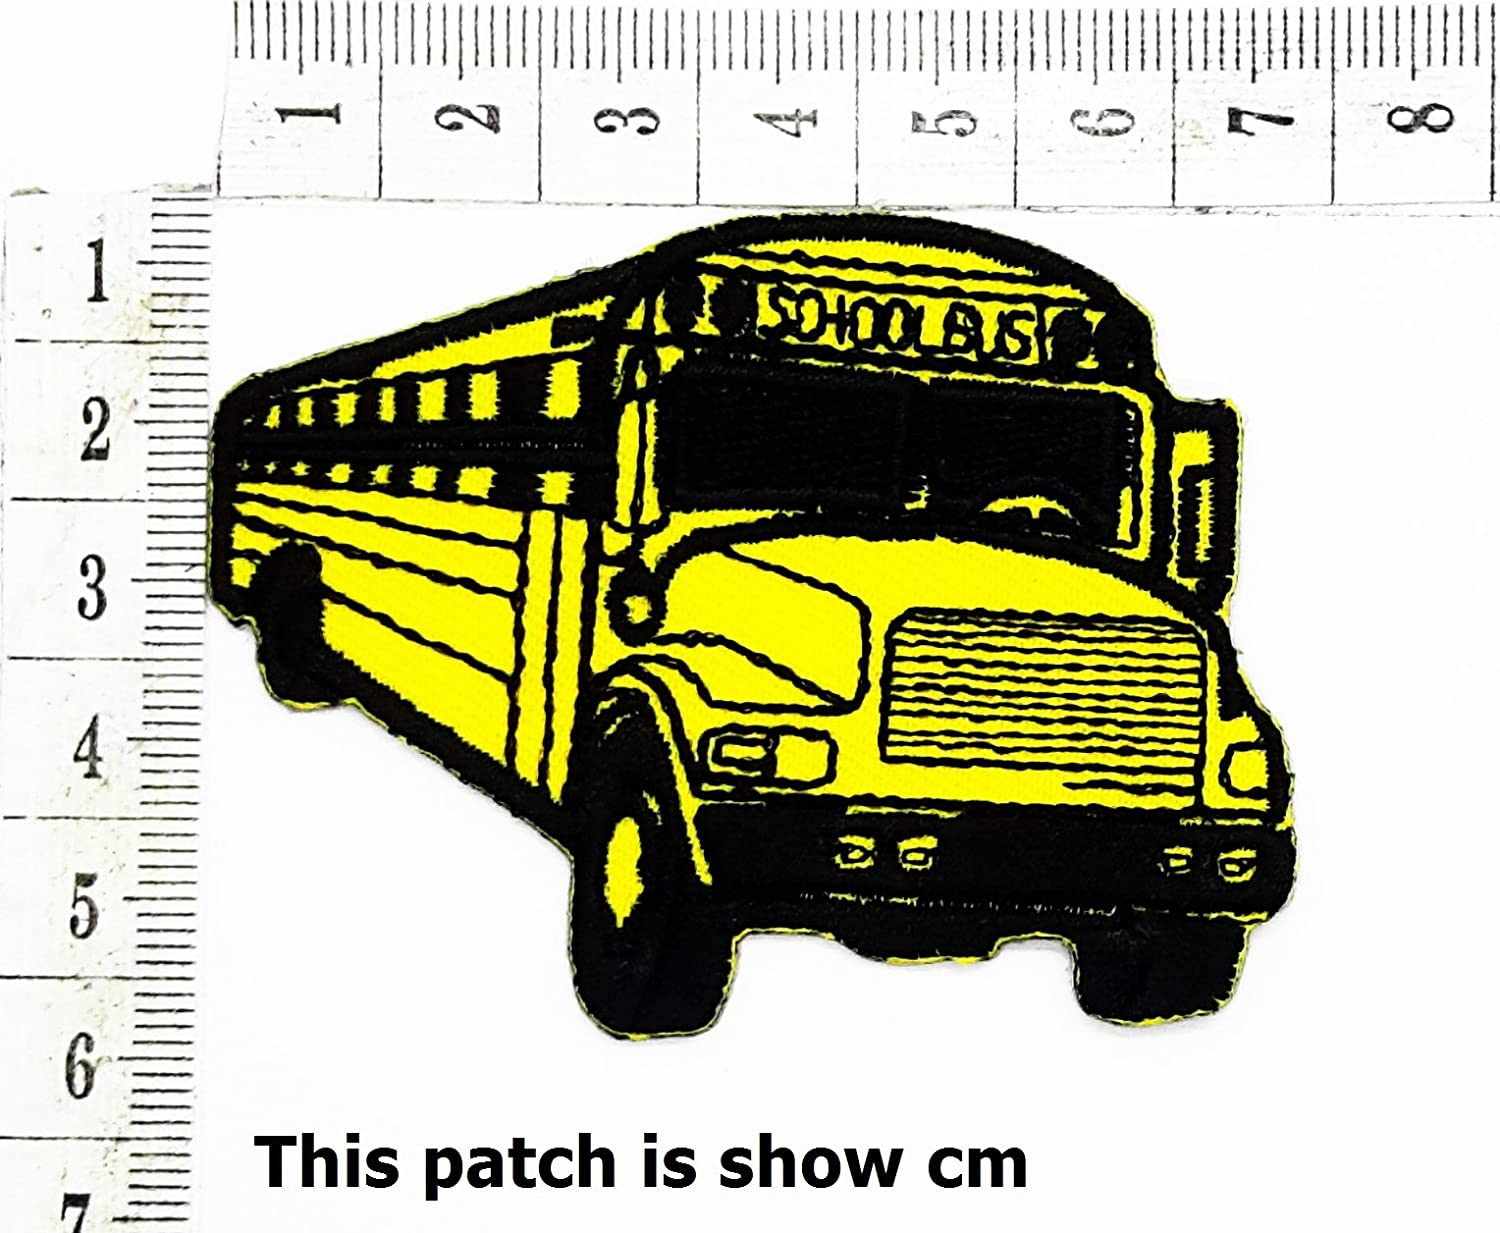 Yellow Bus Stop School Bus Student Bus Classic car Cartoon Chidren Kids Embroidren Iron Patch/Logo Sew On Patch Clothes Bag T-Shirt Jeans Biker Badge Applique